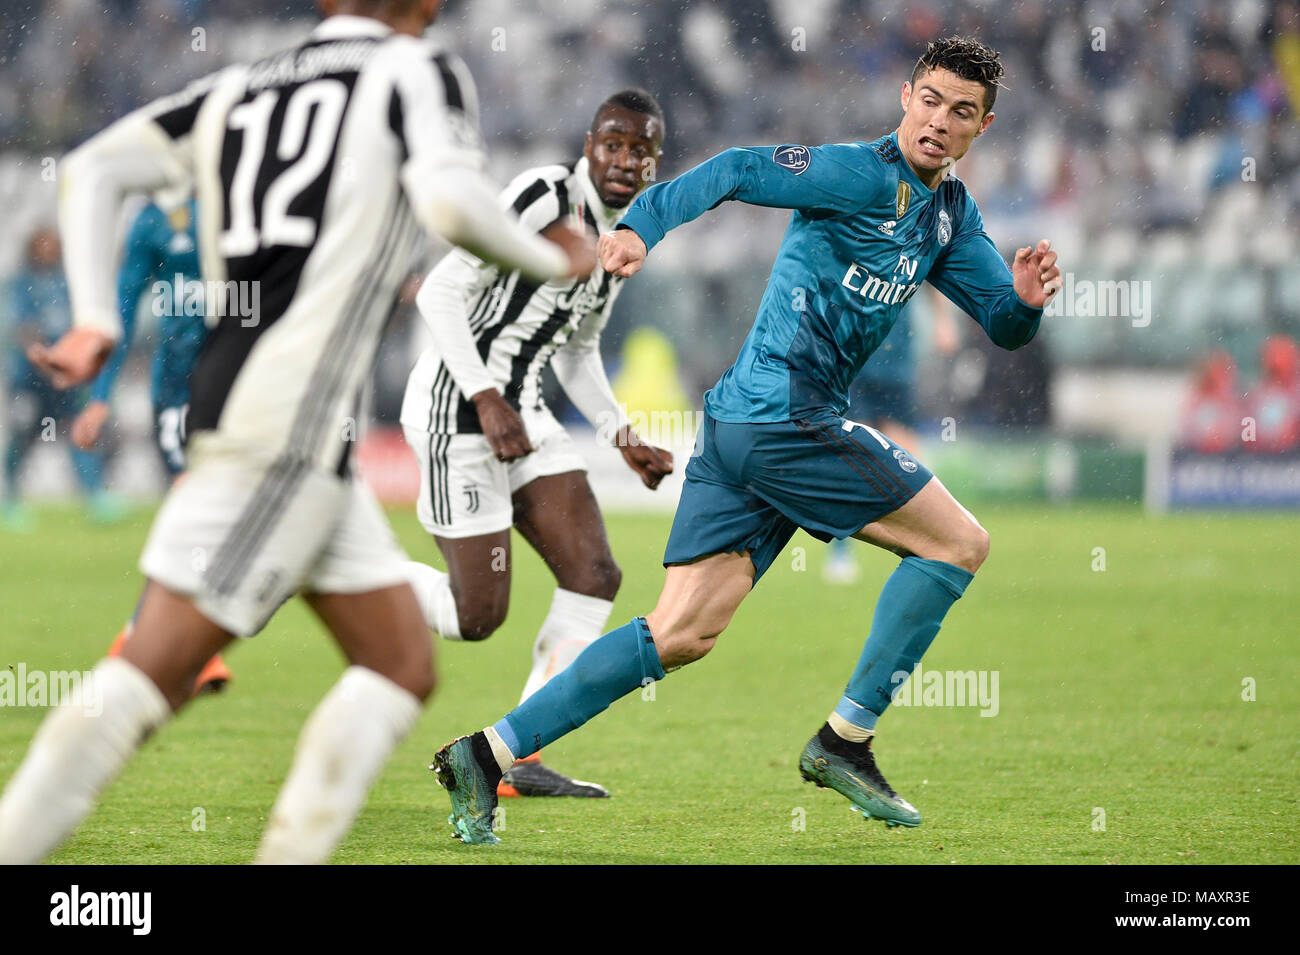 Cristiano Ronaldo (Real Madrid Club de Fœtbol),  during the UEFA Champions League quarter-finals 1st leg football match between Juventus FC and Real Madrid CF at Allianz Stadium on 03 April, 2018 in Turin, Italy. - Stock Image